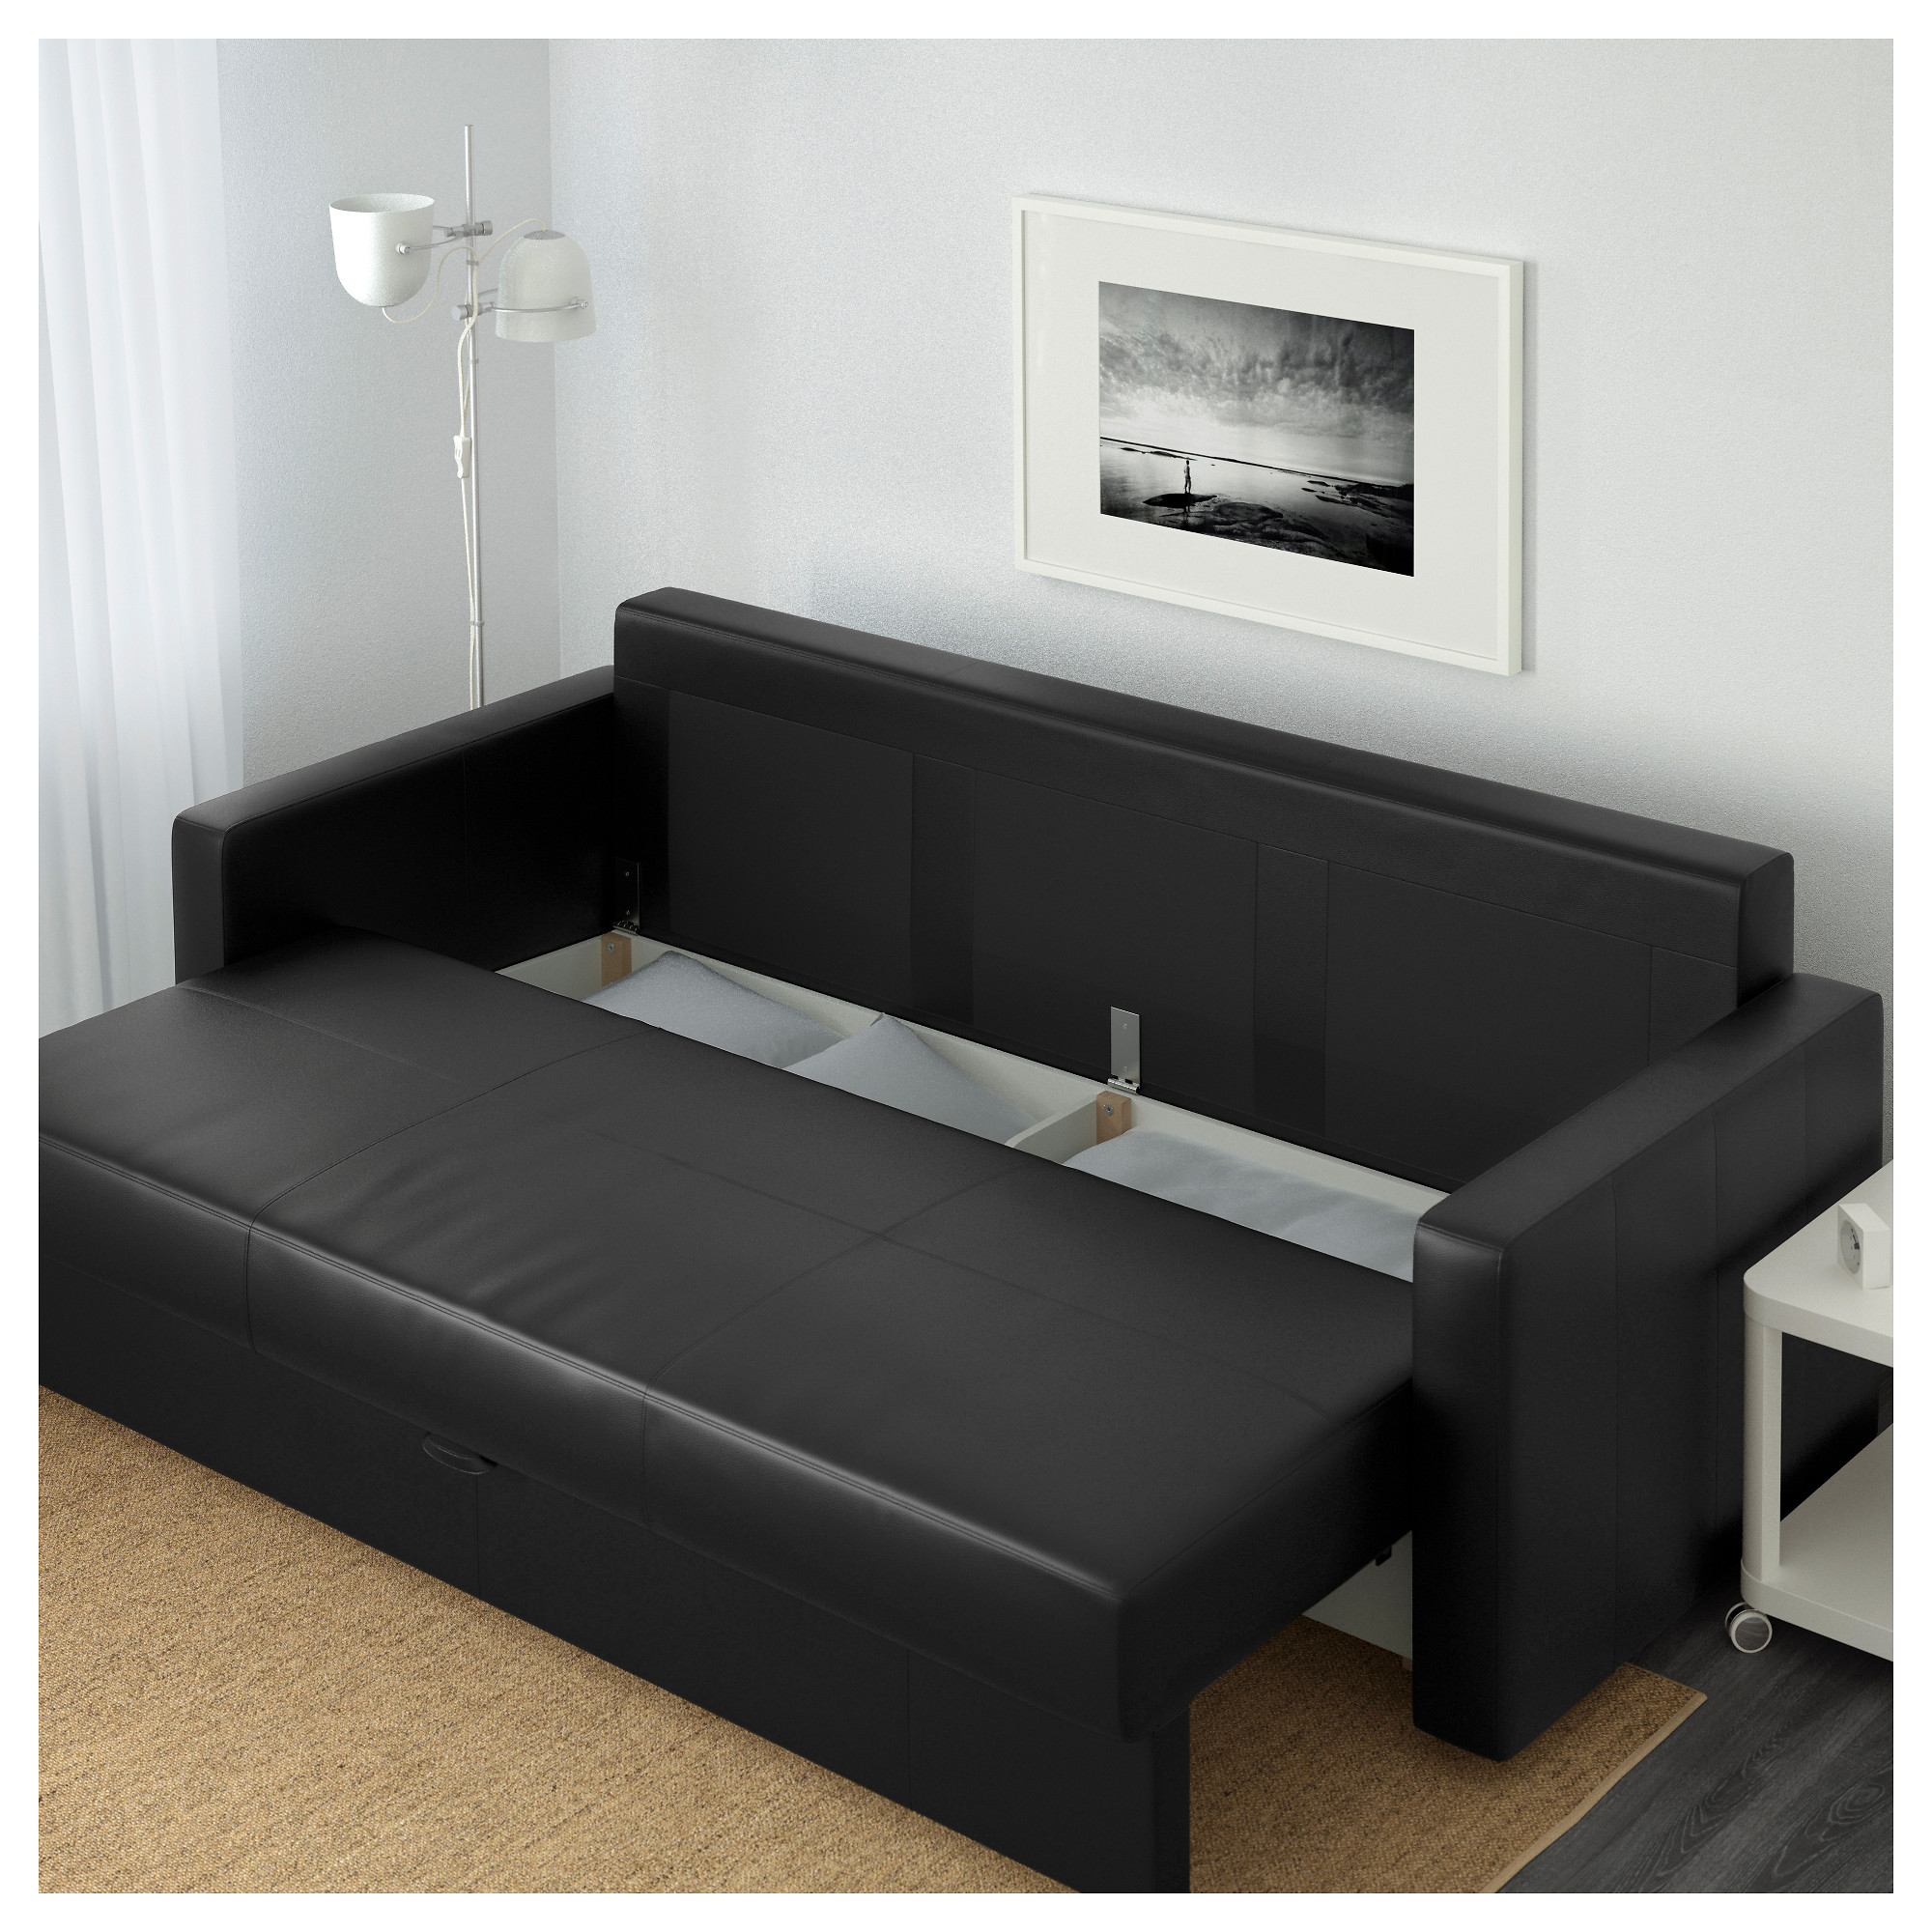 Flip chair bed ikea - Flip Chair Bed Friheten Corner Sofa Bed Moheda Sofa Bed